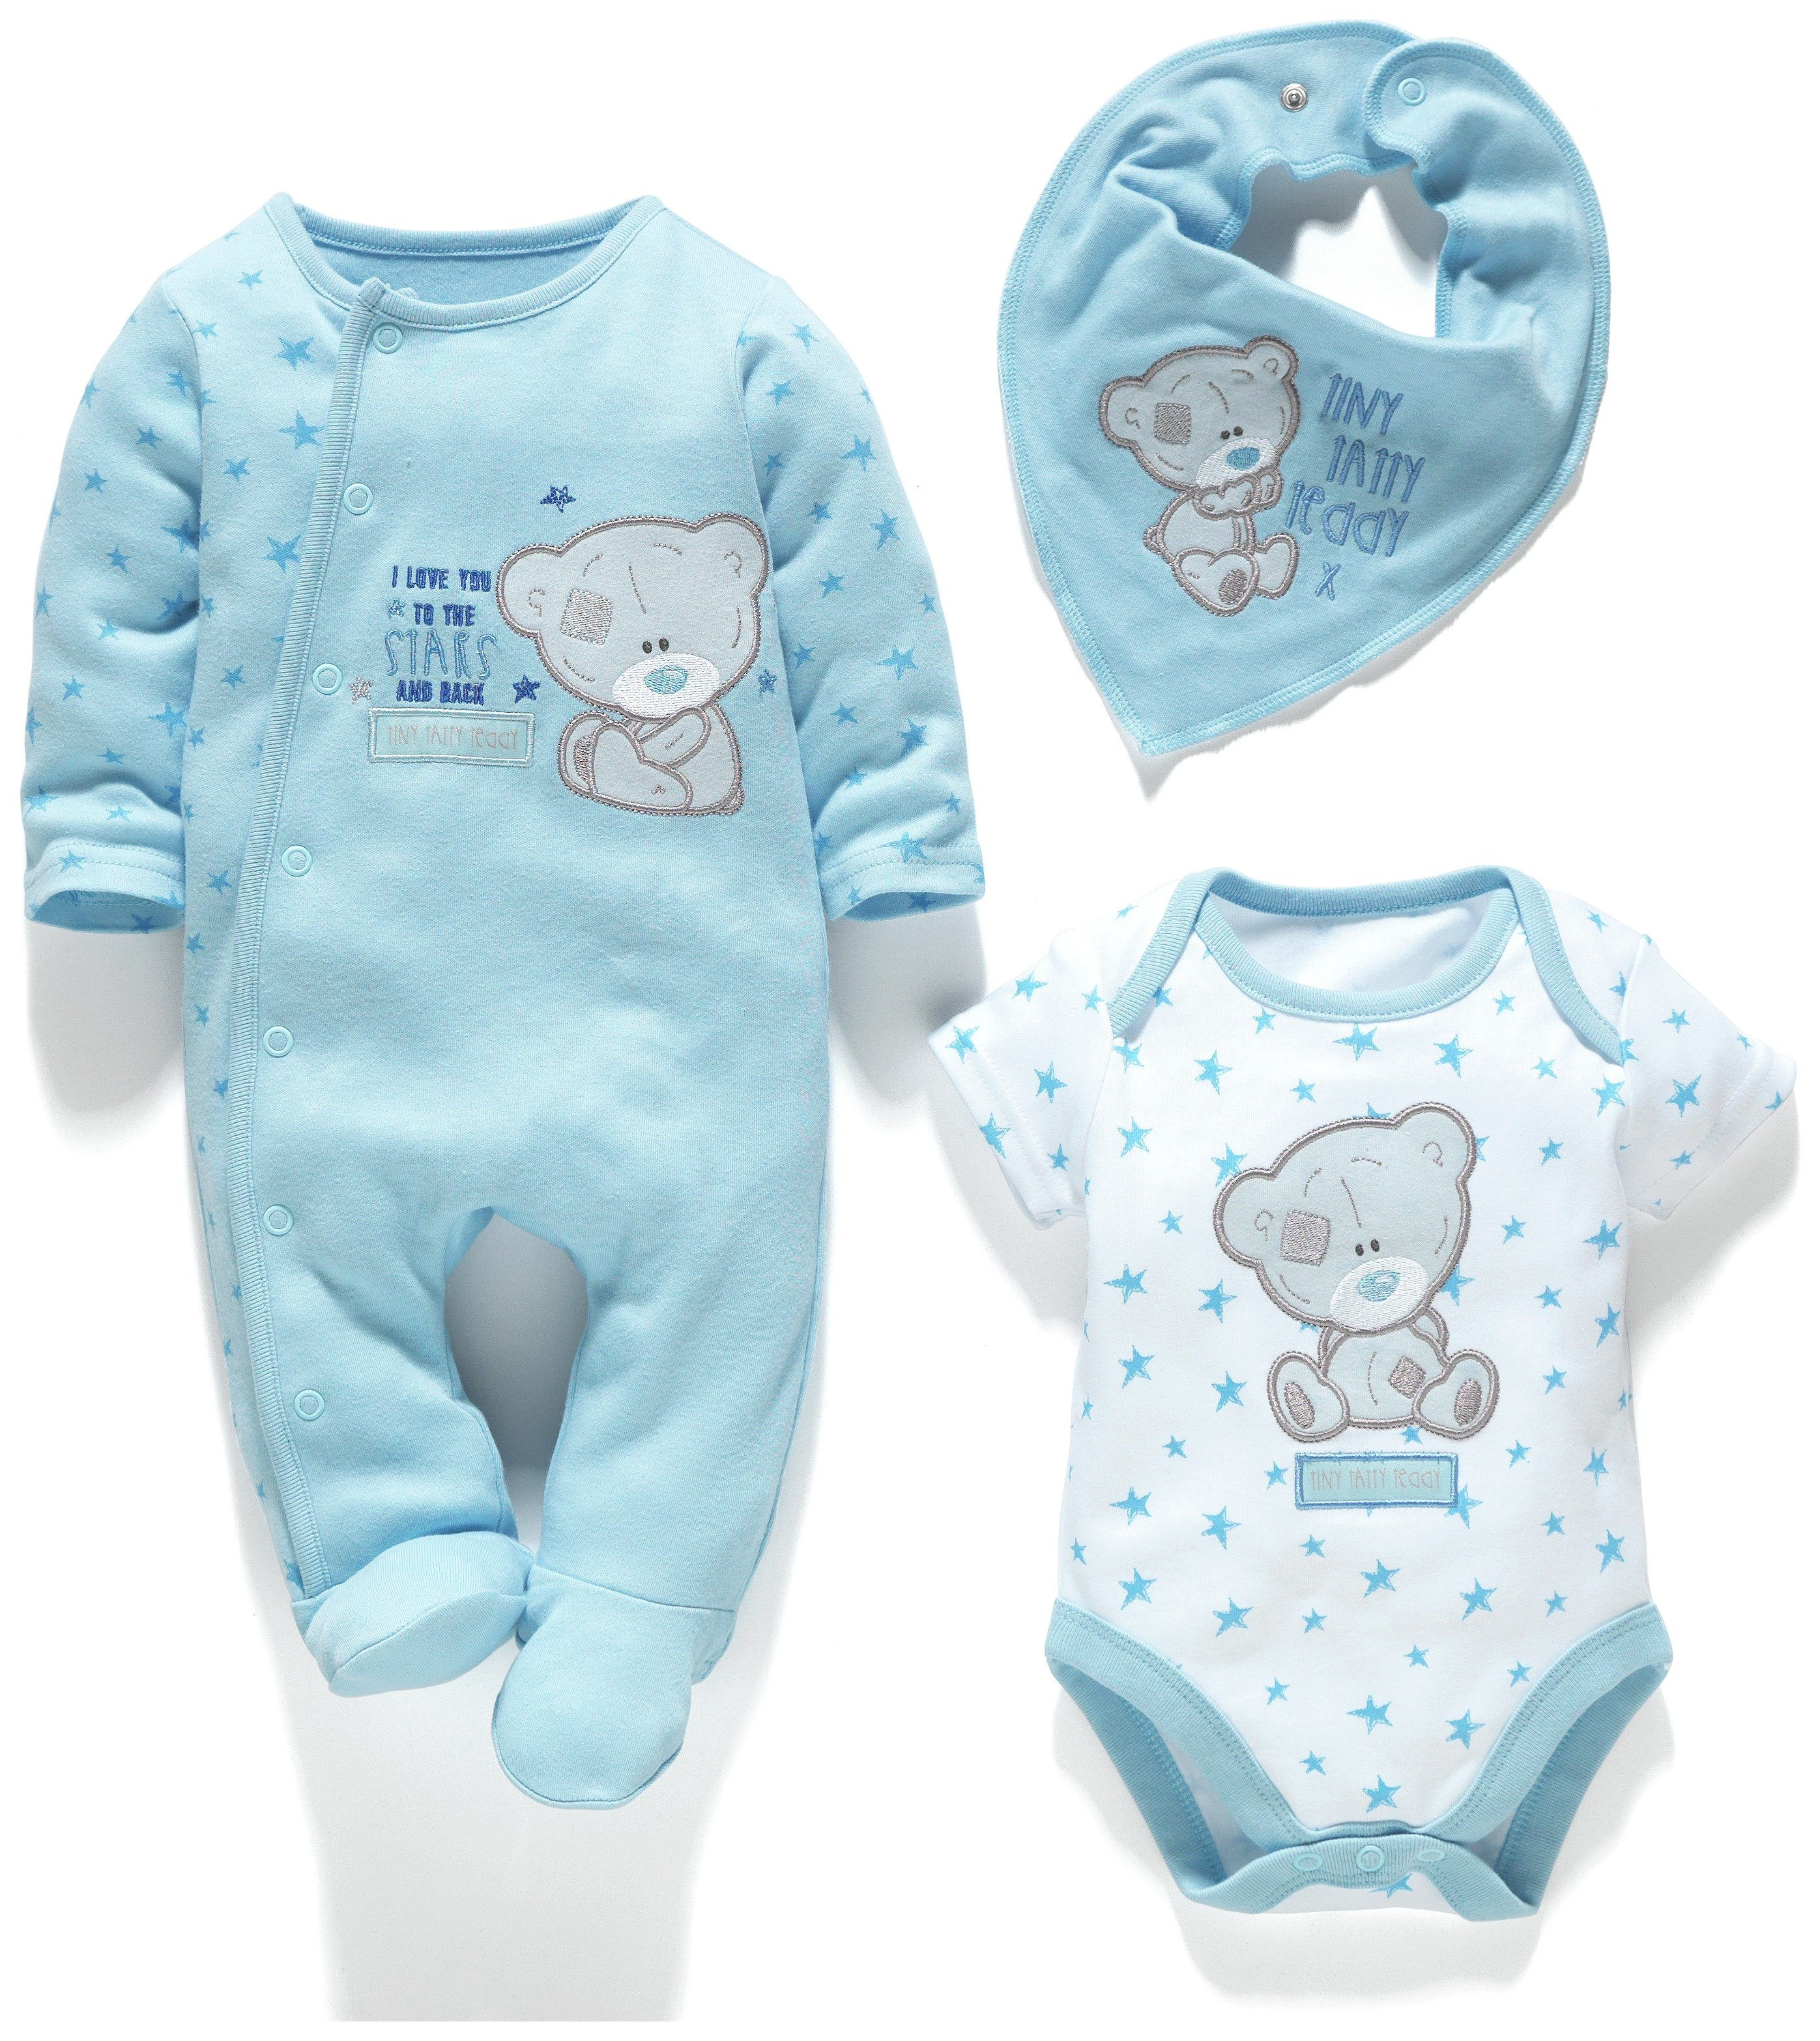 Image of Carte Blanch Baby Tatty Teddy Gift Set Blue - 3-6 Months